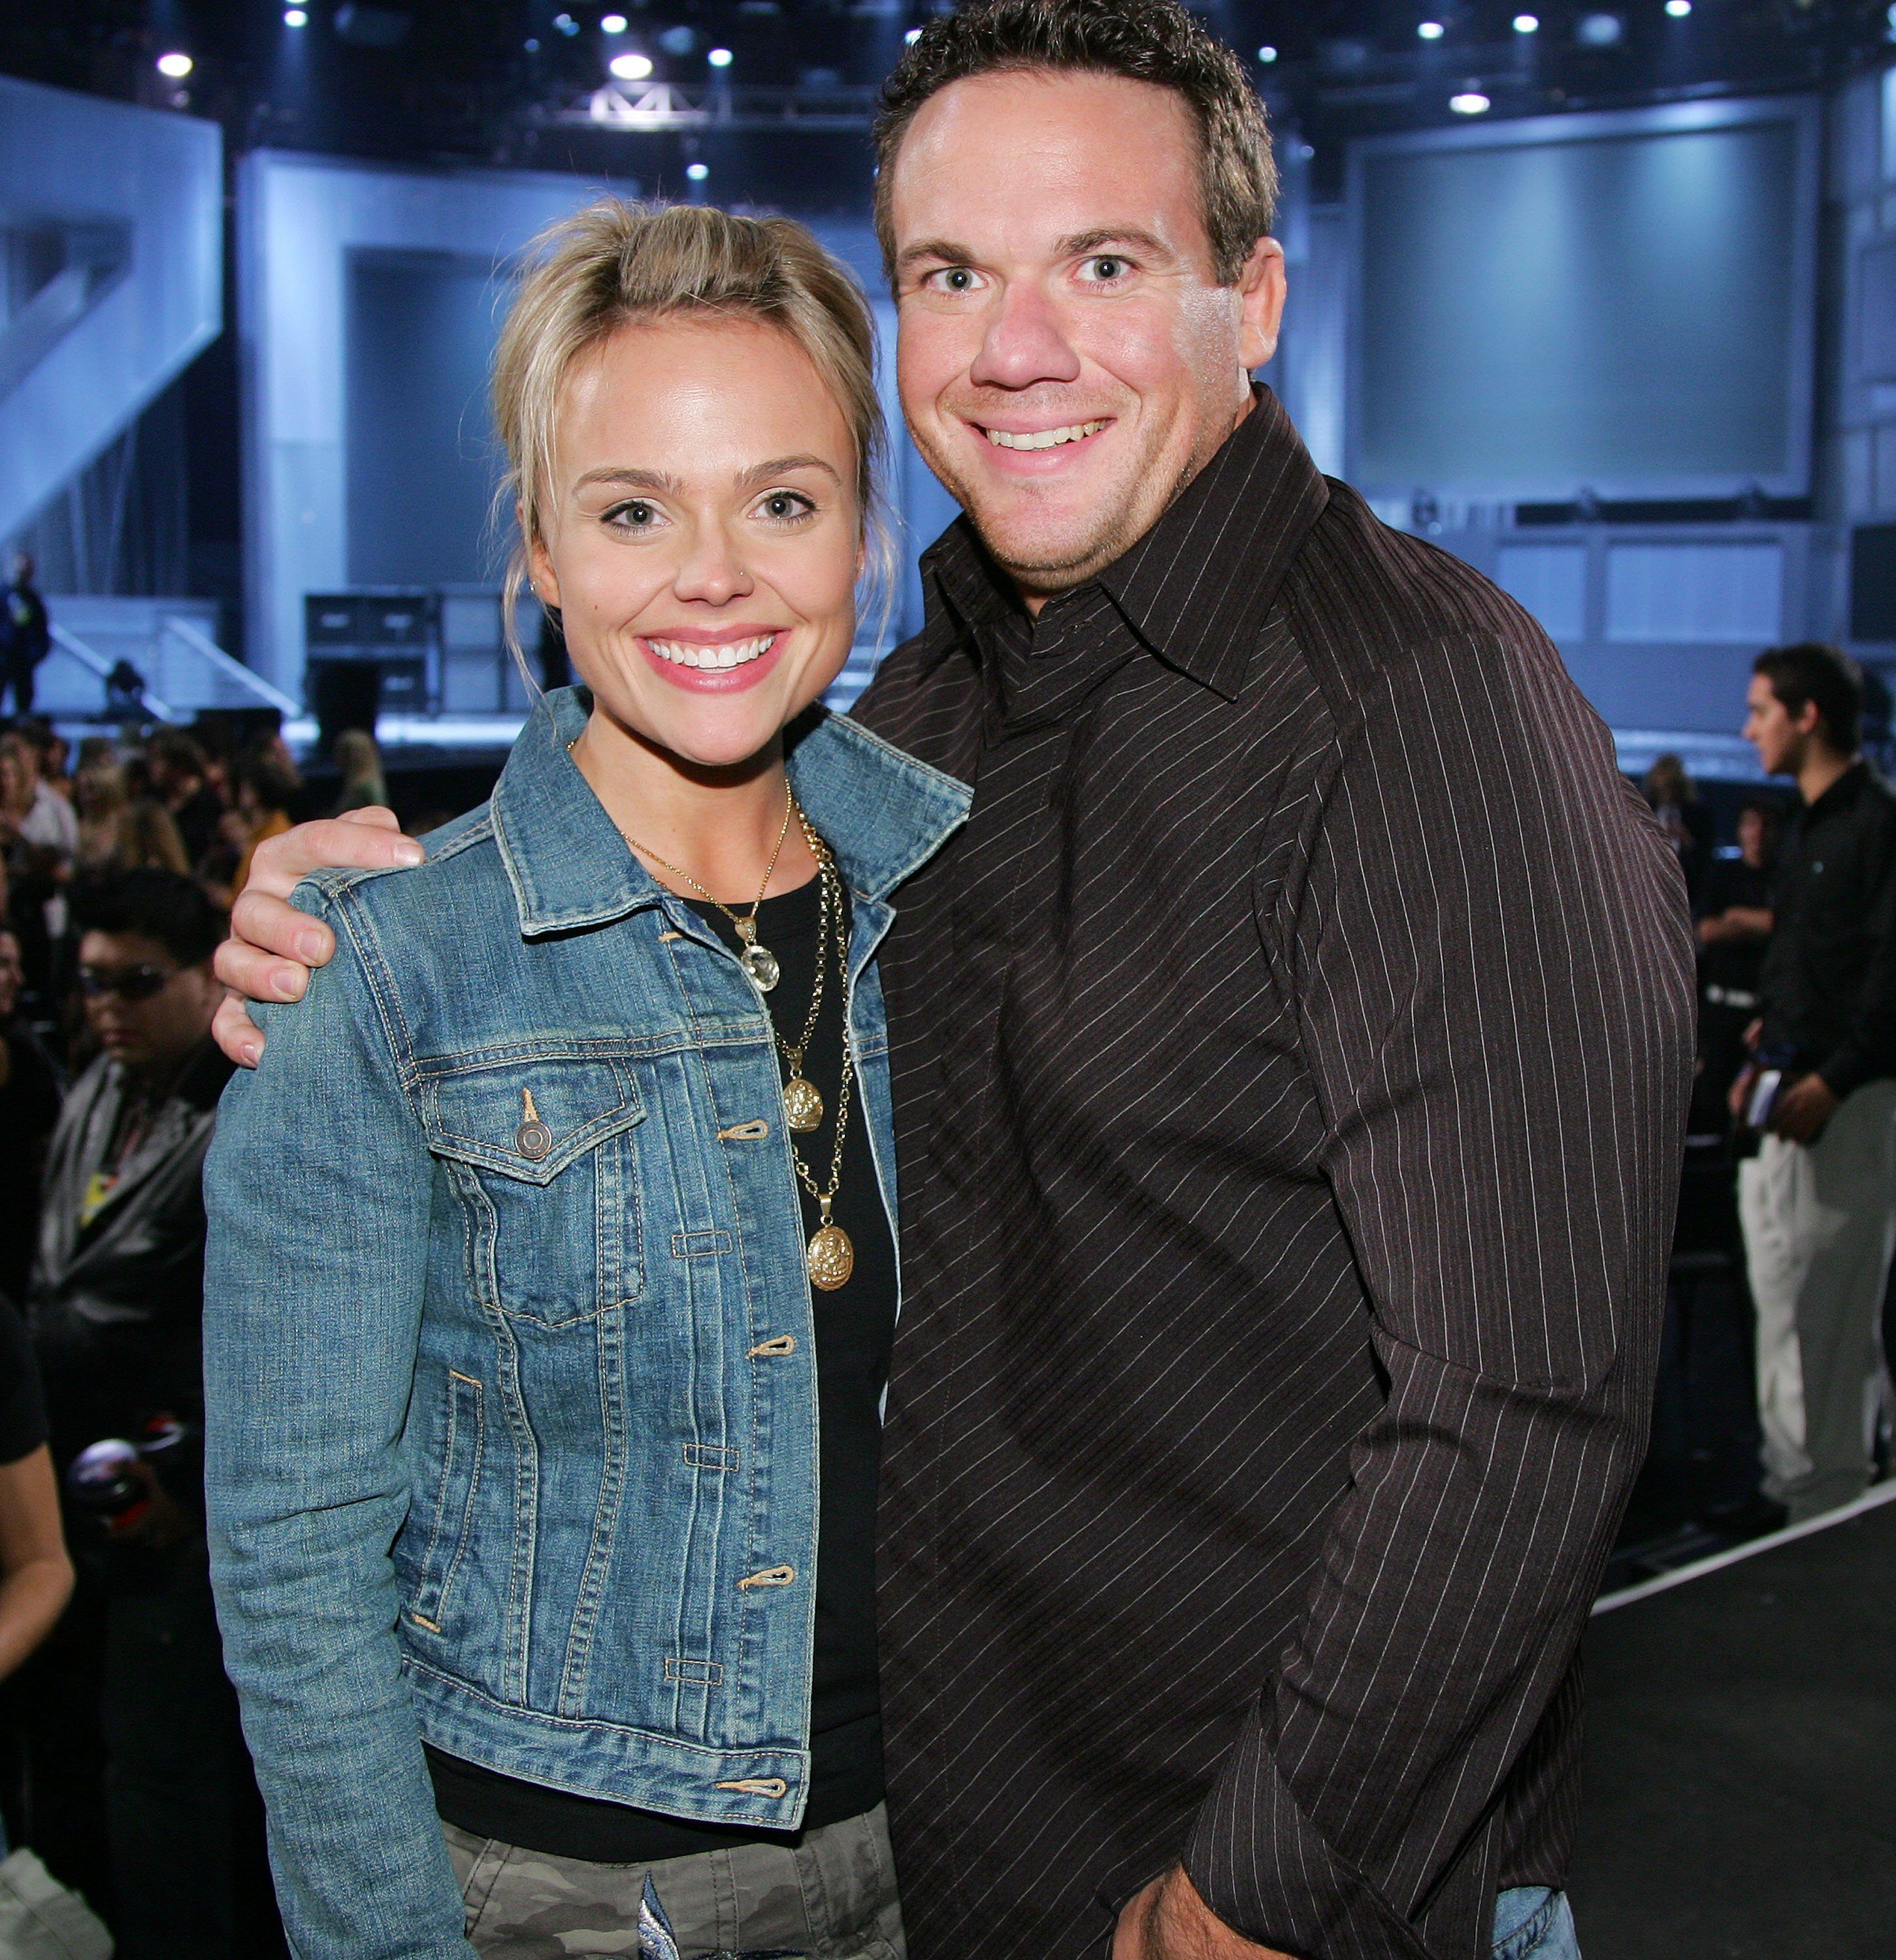 Suzy Preston and Matt Hoover from The Biggest Loser | Getty Images